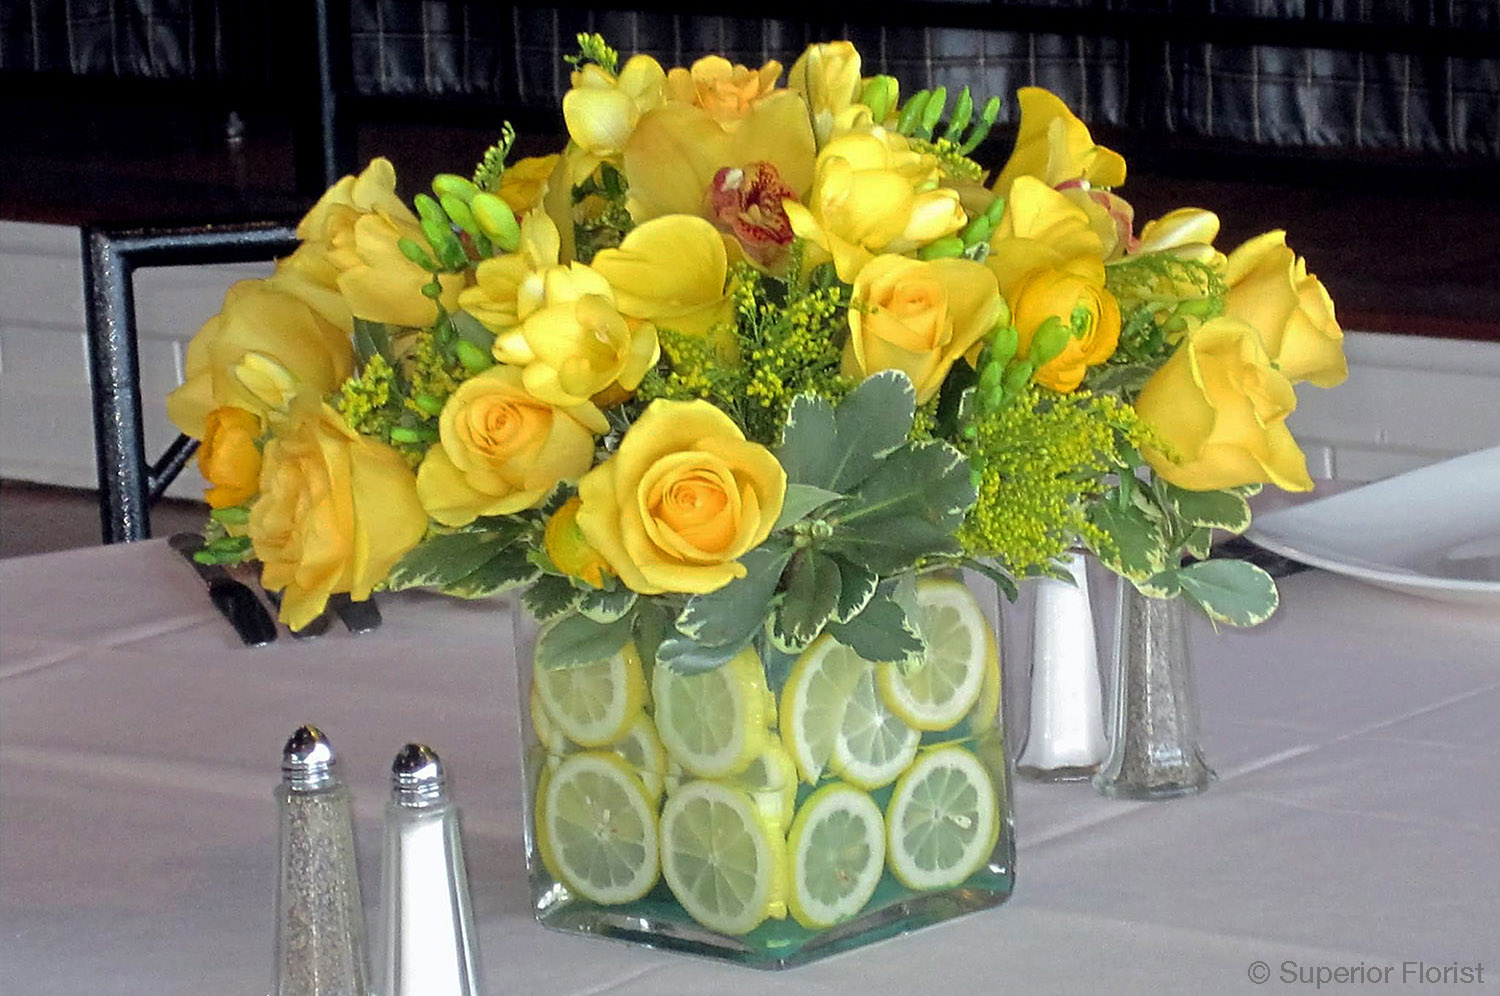 Superior Florist – Centerpieces:  Freesias, Ranunculus, Cymbidiums and roses arranged in a glass cube vase lined with lemon slices.